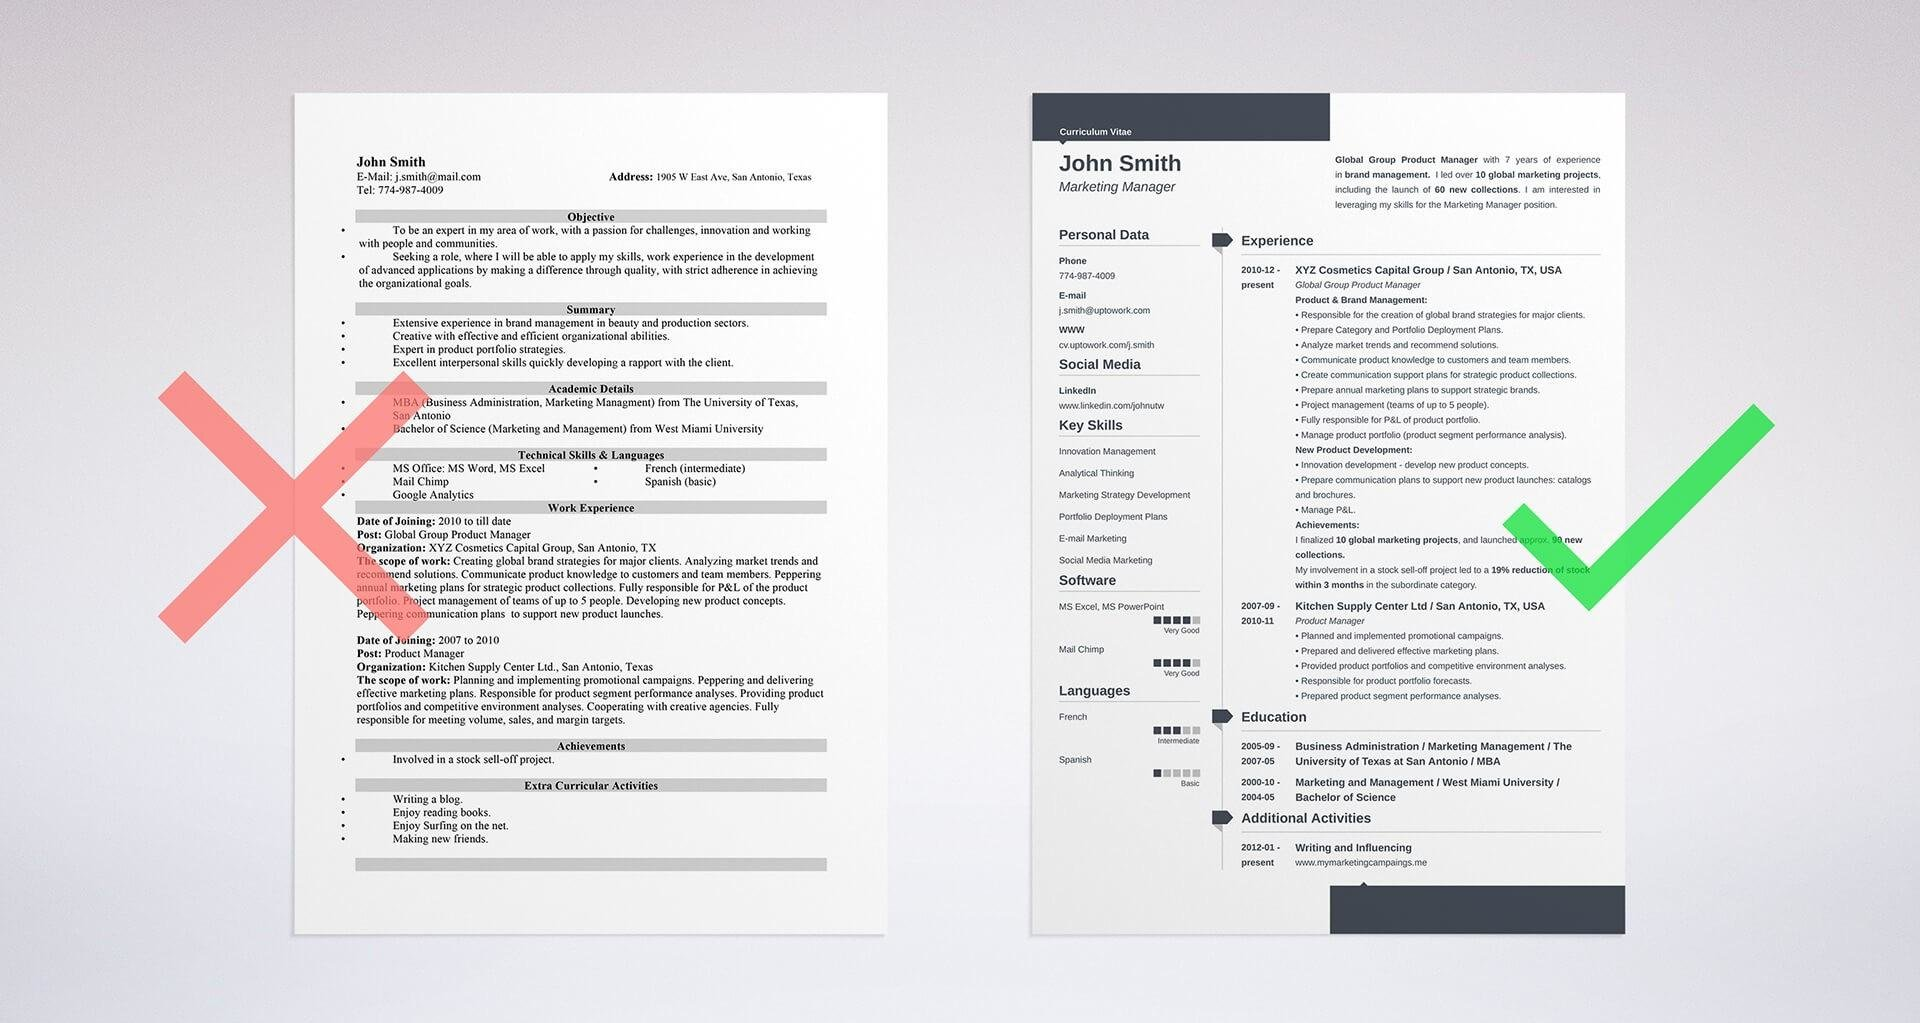 High Quality 20+ Resume Objective Examples   Use Them On Your Resume (Tips)